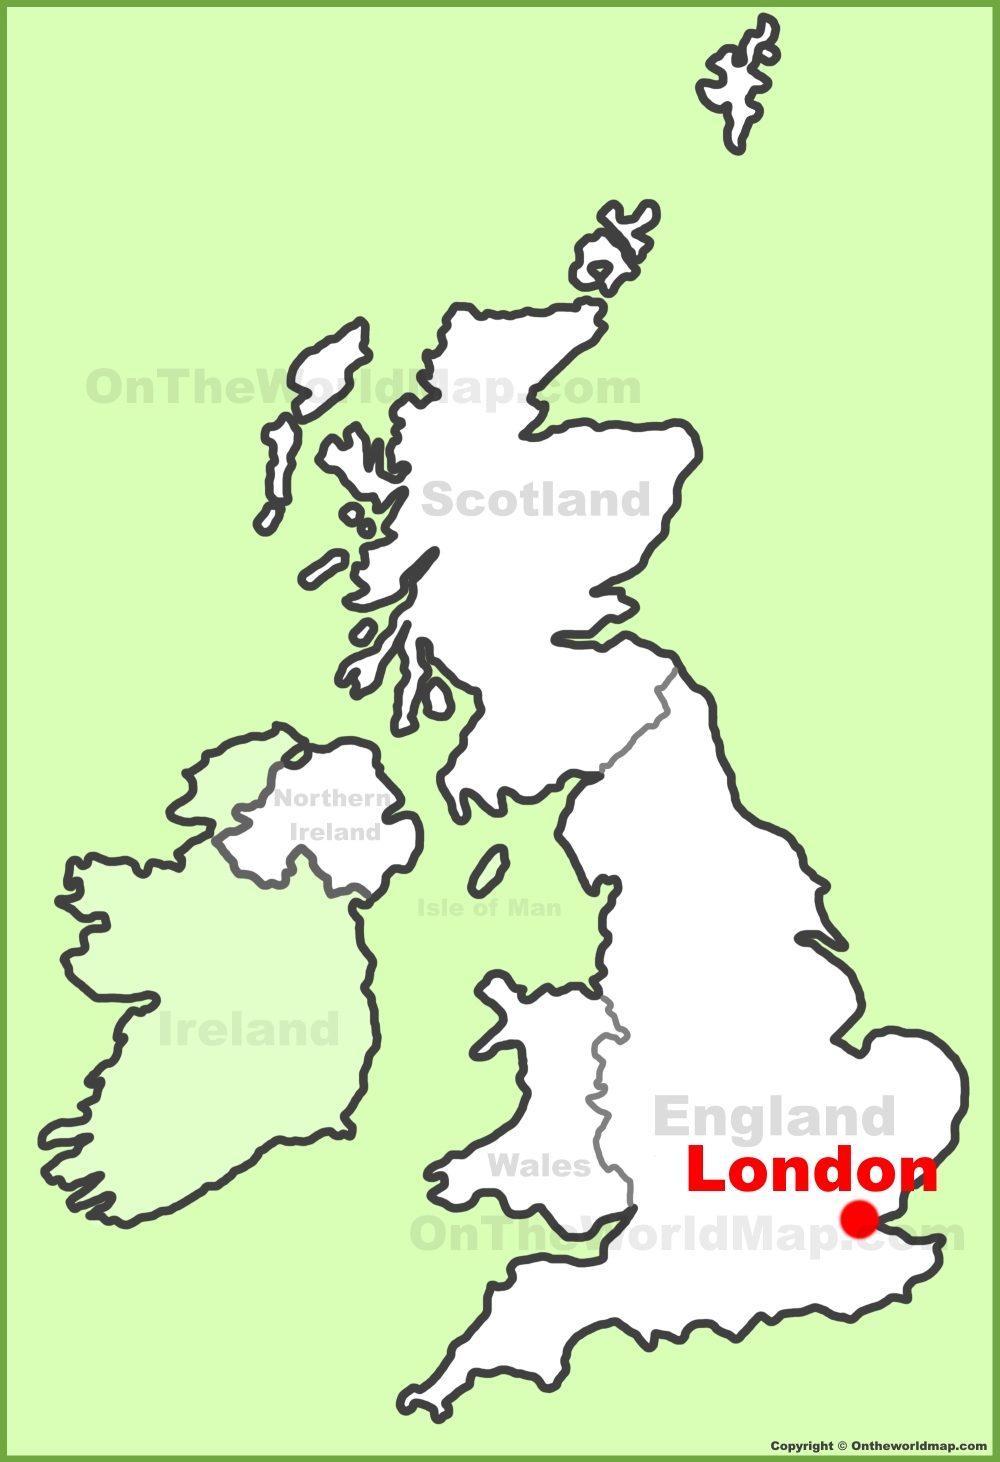 London Location On The Uk Map